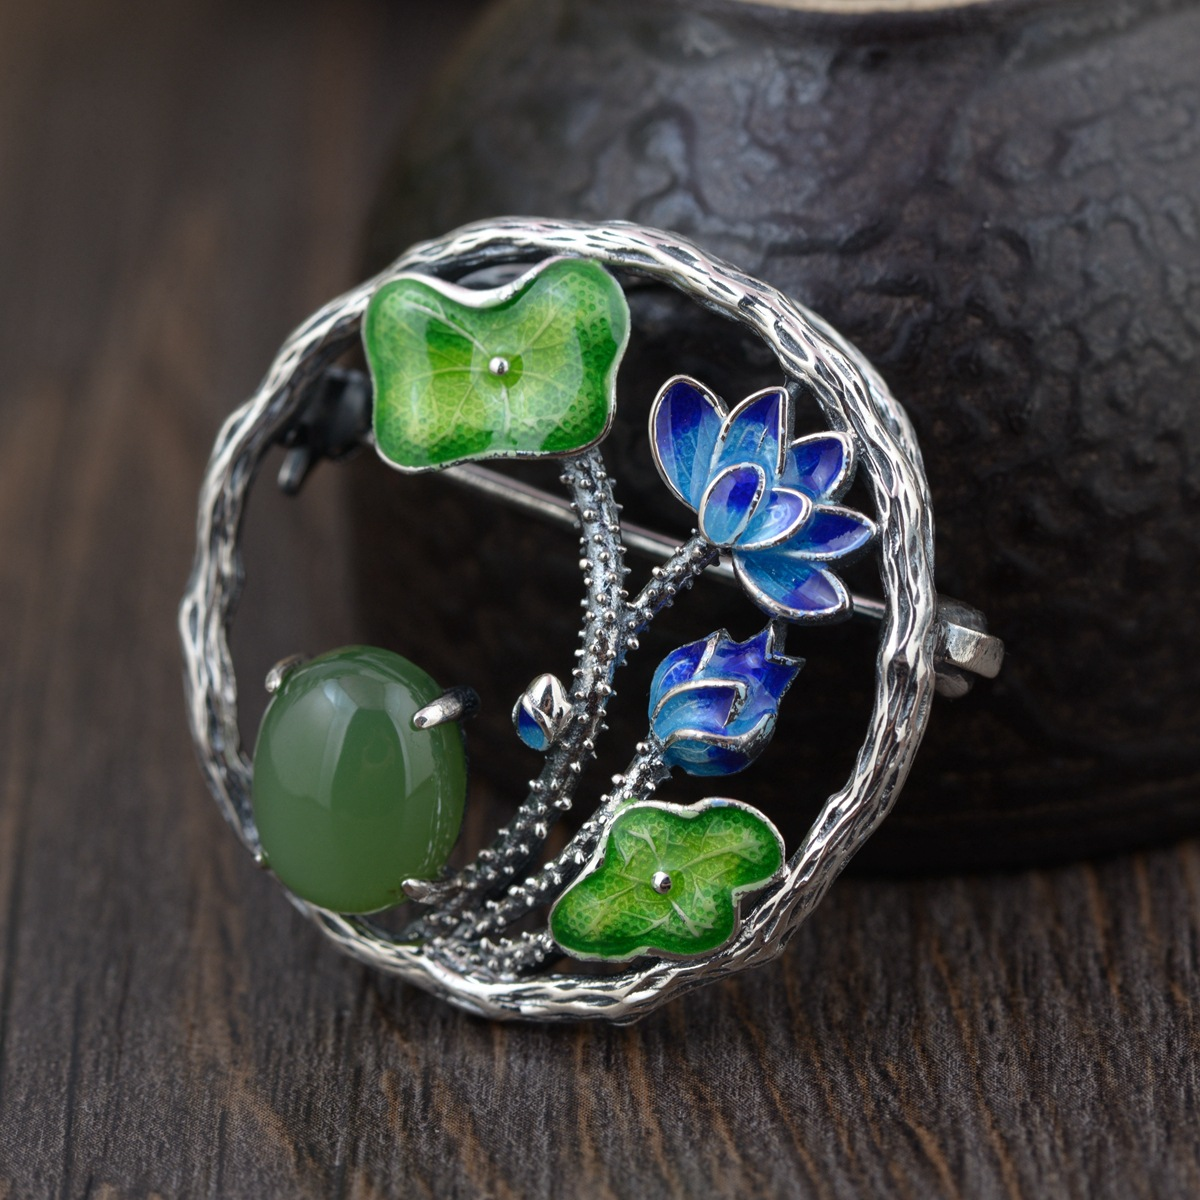 Thai Silver Lotus Brooch Pendant Handmade Flower Enamel Silver Brooches Flowers Natural Stone Chinese Style Pins Jewelry SBH0005 все цены